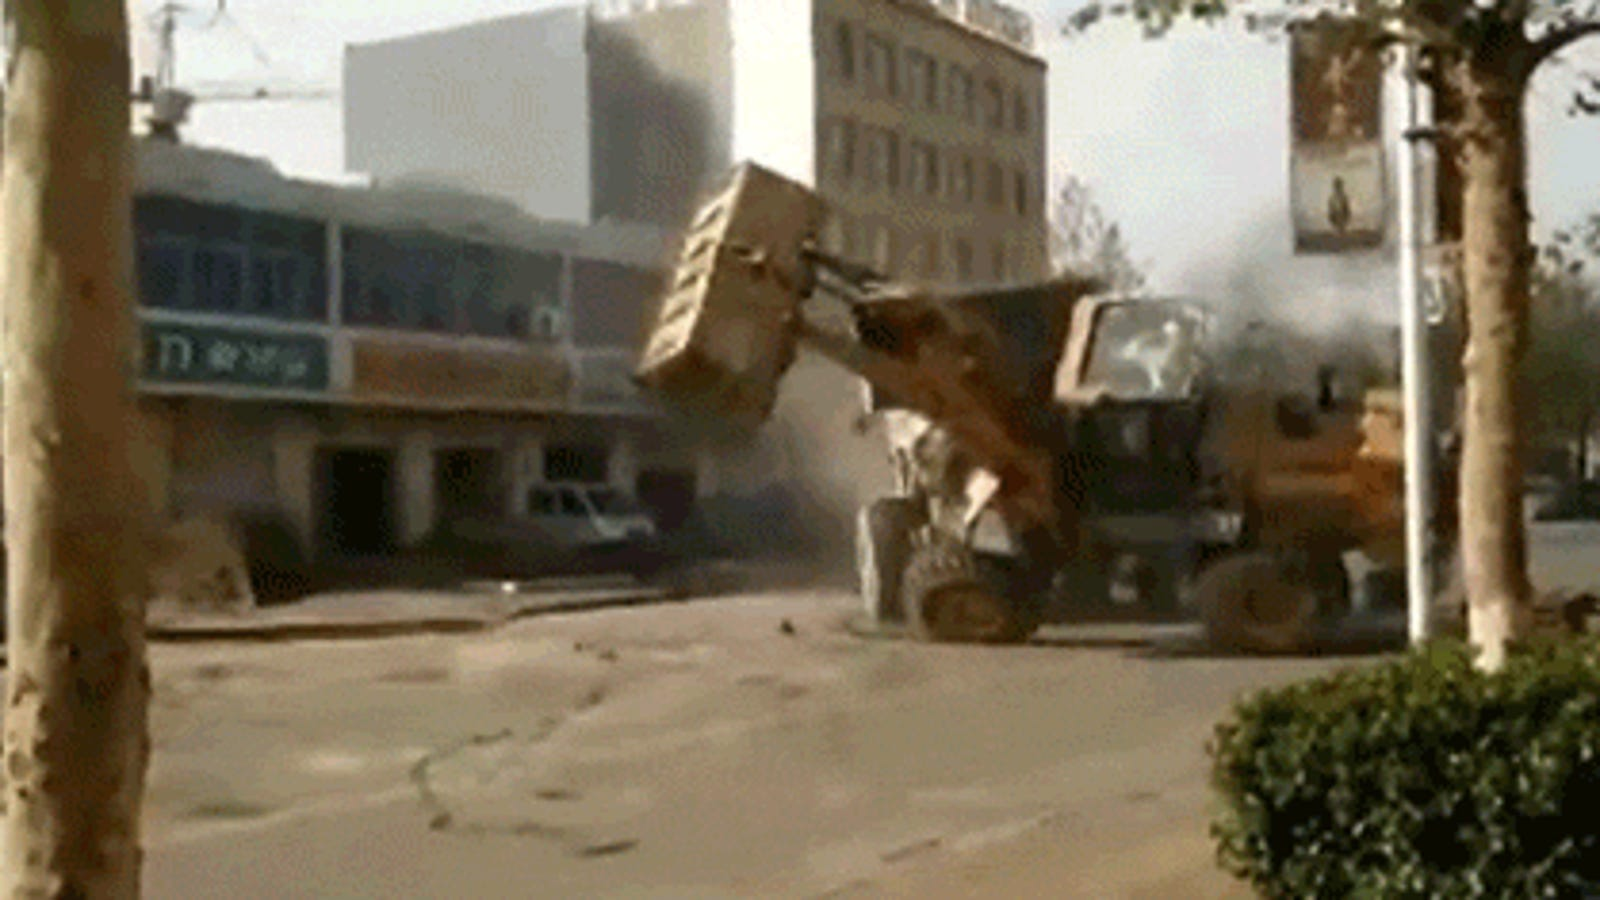 Watch Six Bulldozers Battle Each Other on the Streets of China in the Craziest Fight Ever